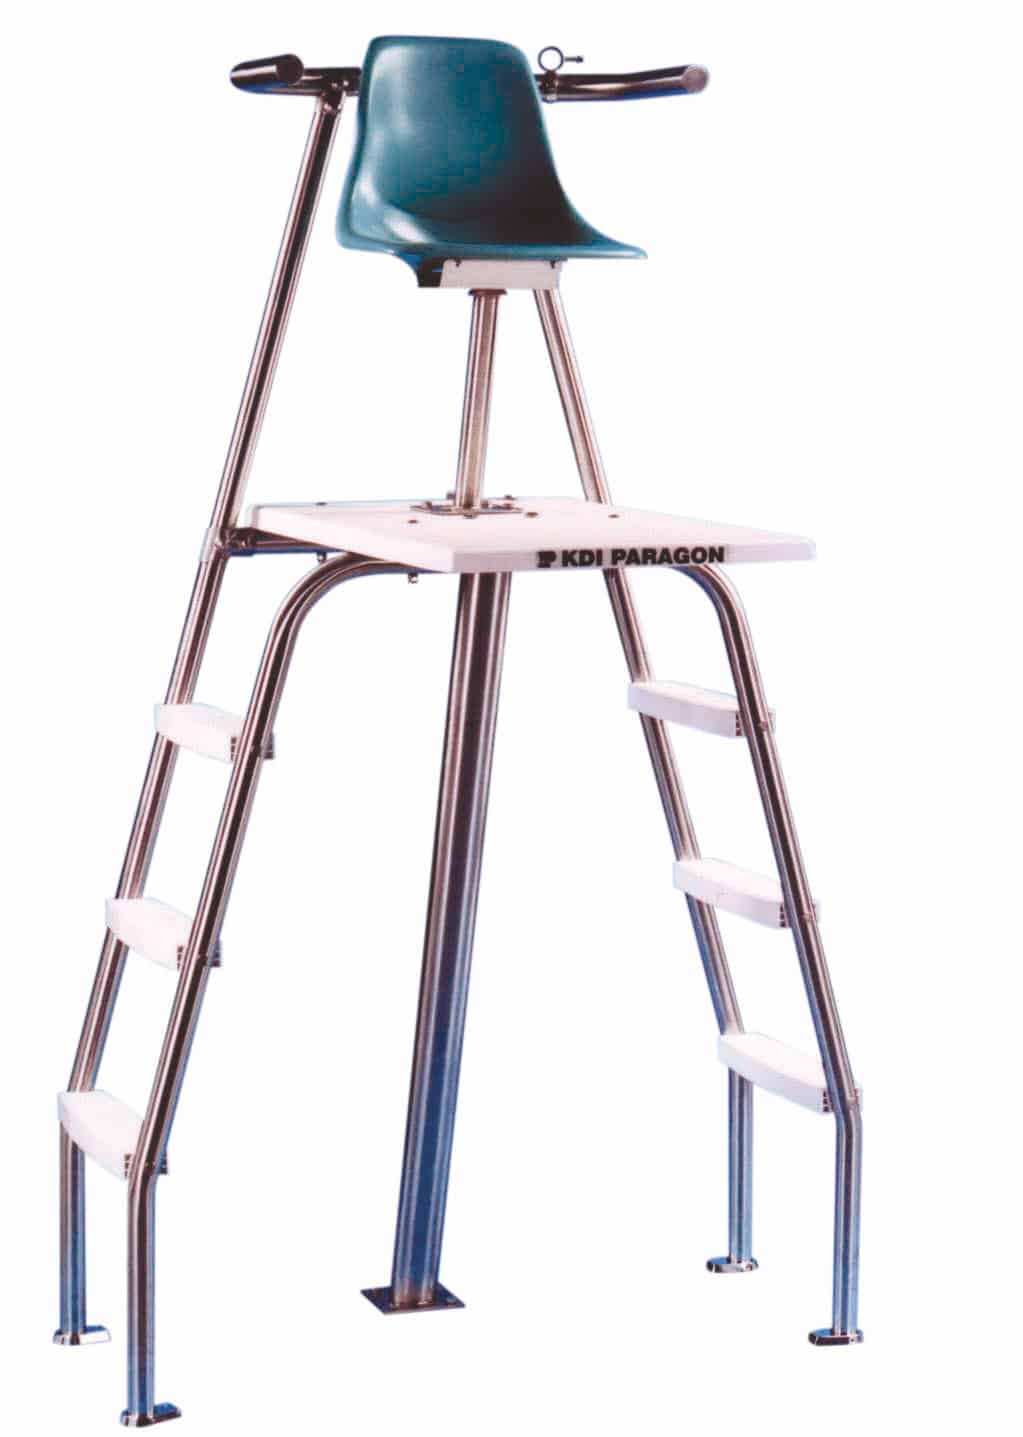 paragon lifeguard chairs pub height chair side ladder swimtime